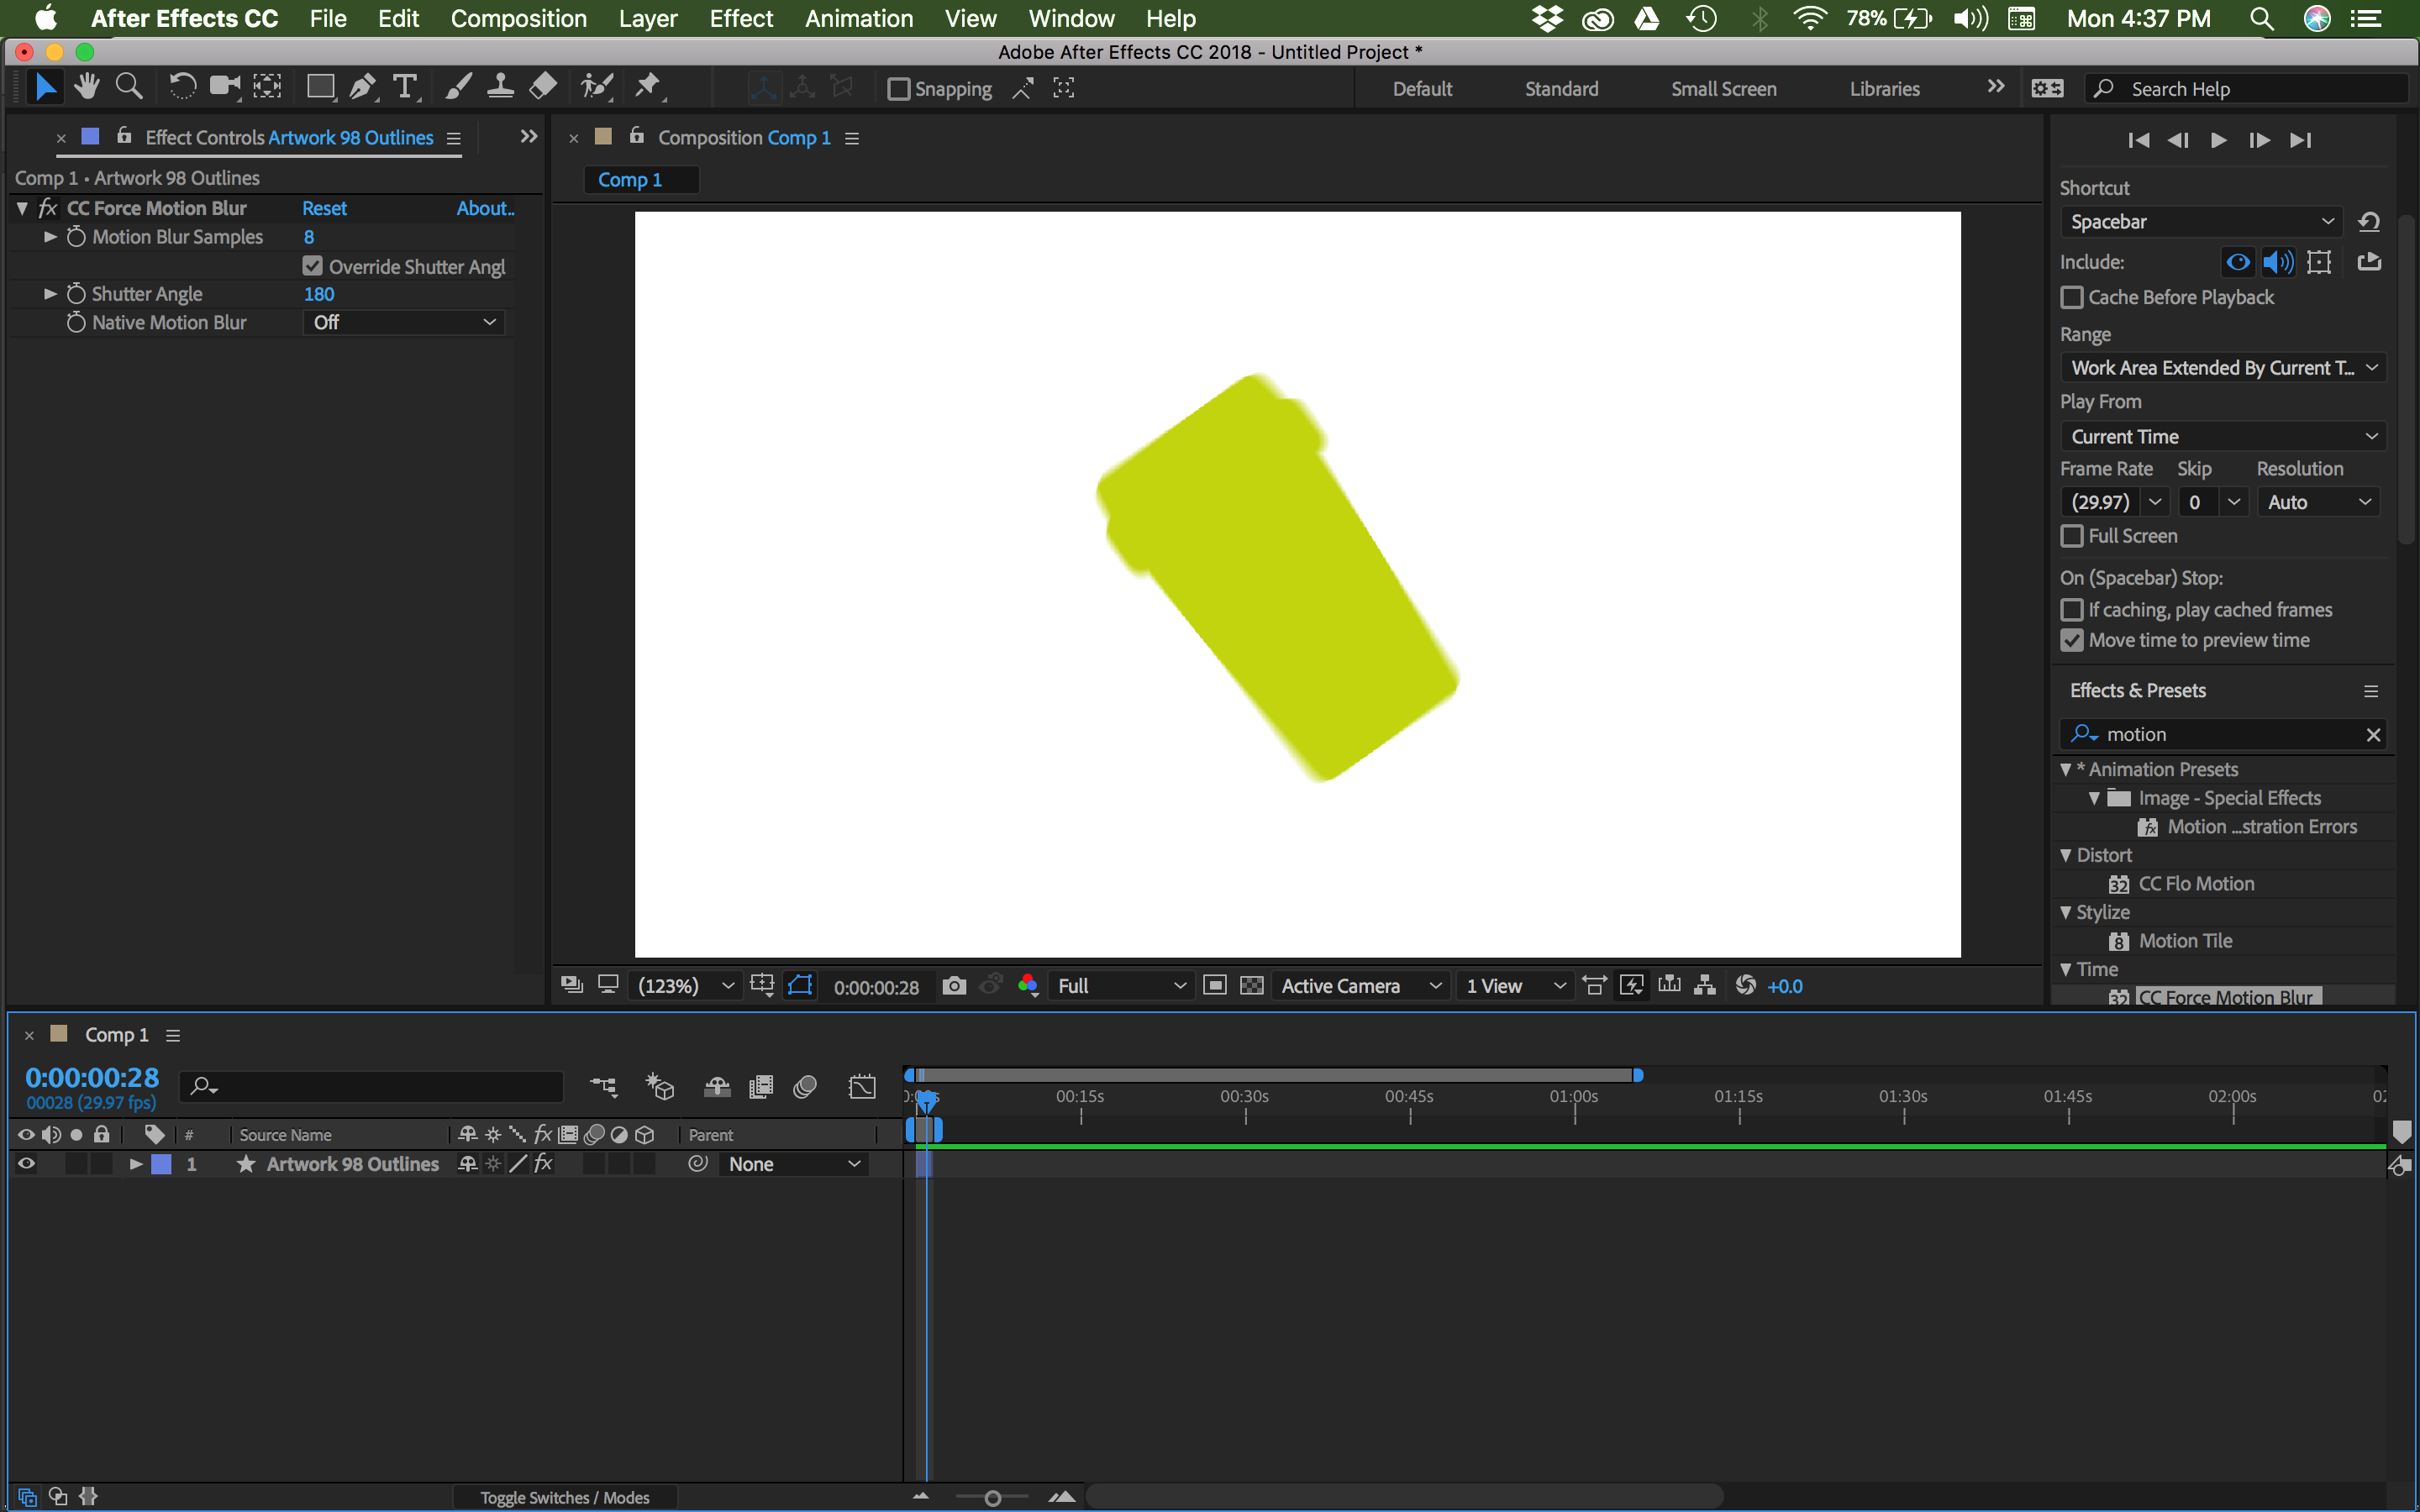 Bodymovin - My animations are exporting without capturing the